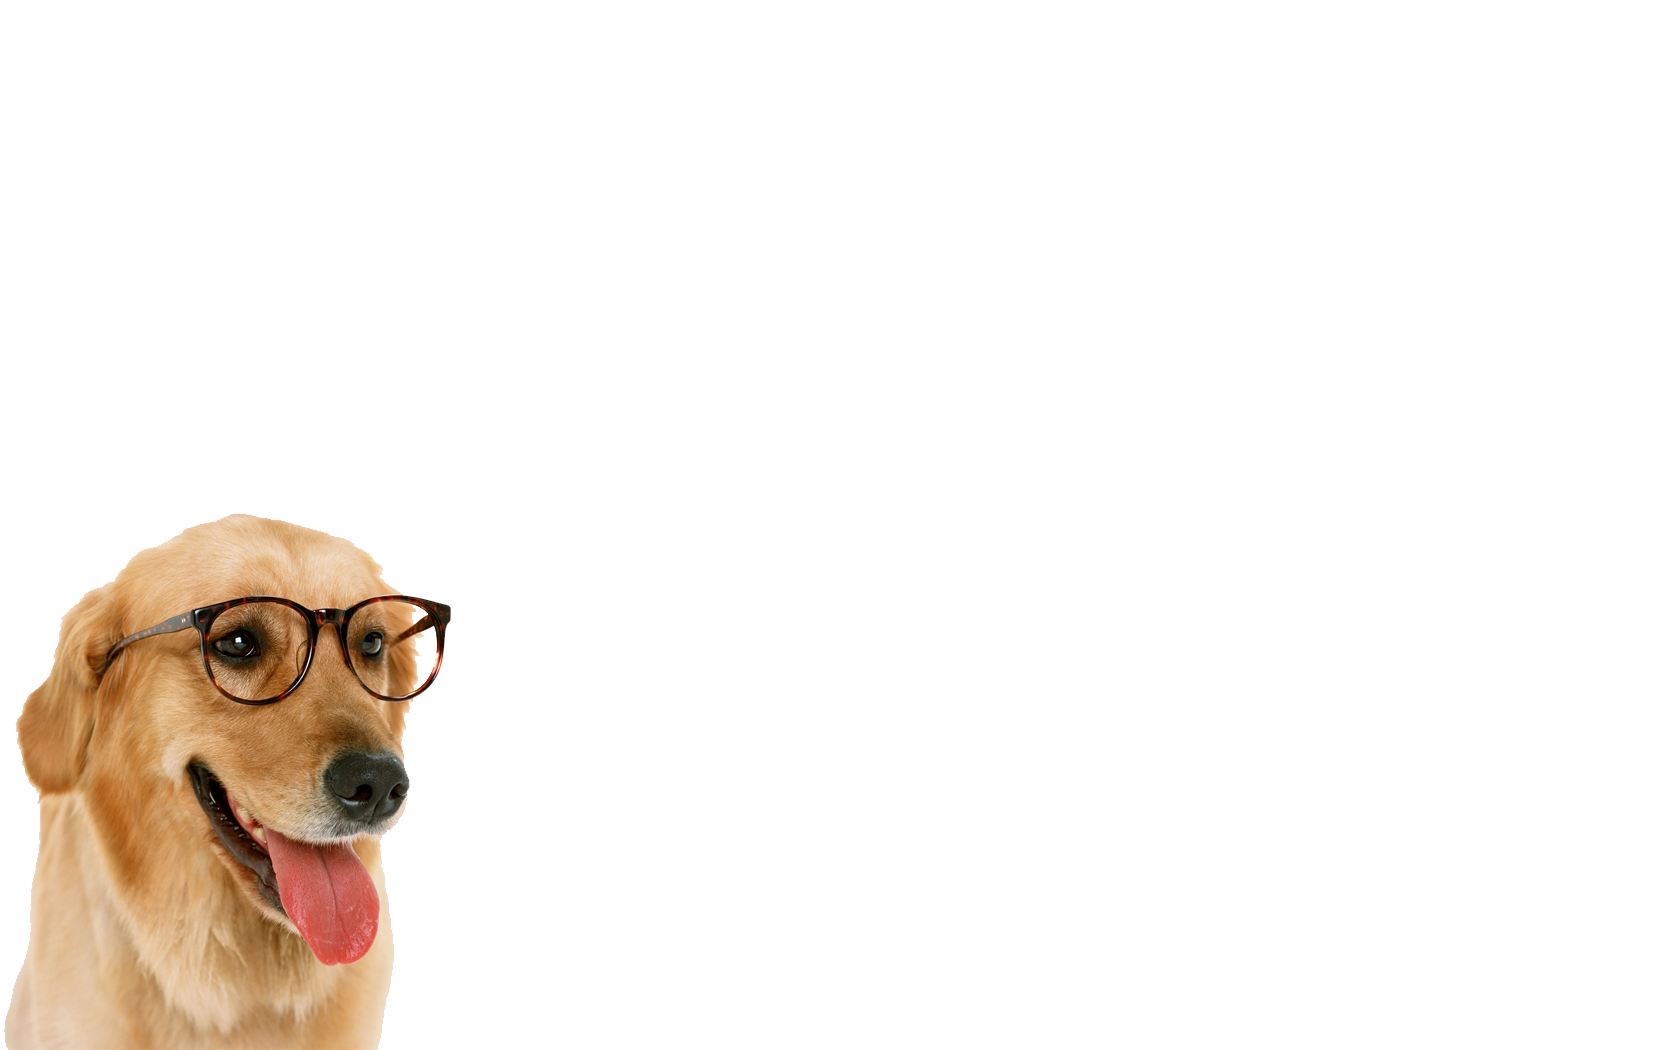 Download Free High-quality Dog Png Transparent Images image #22668